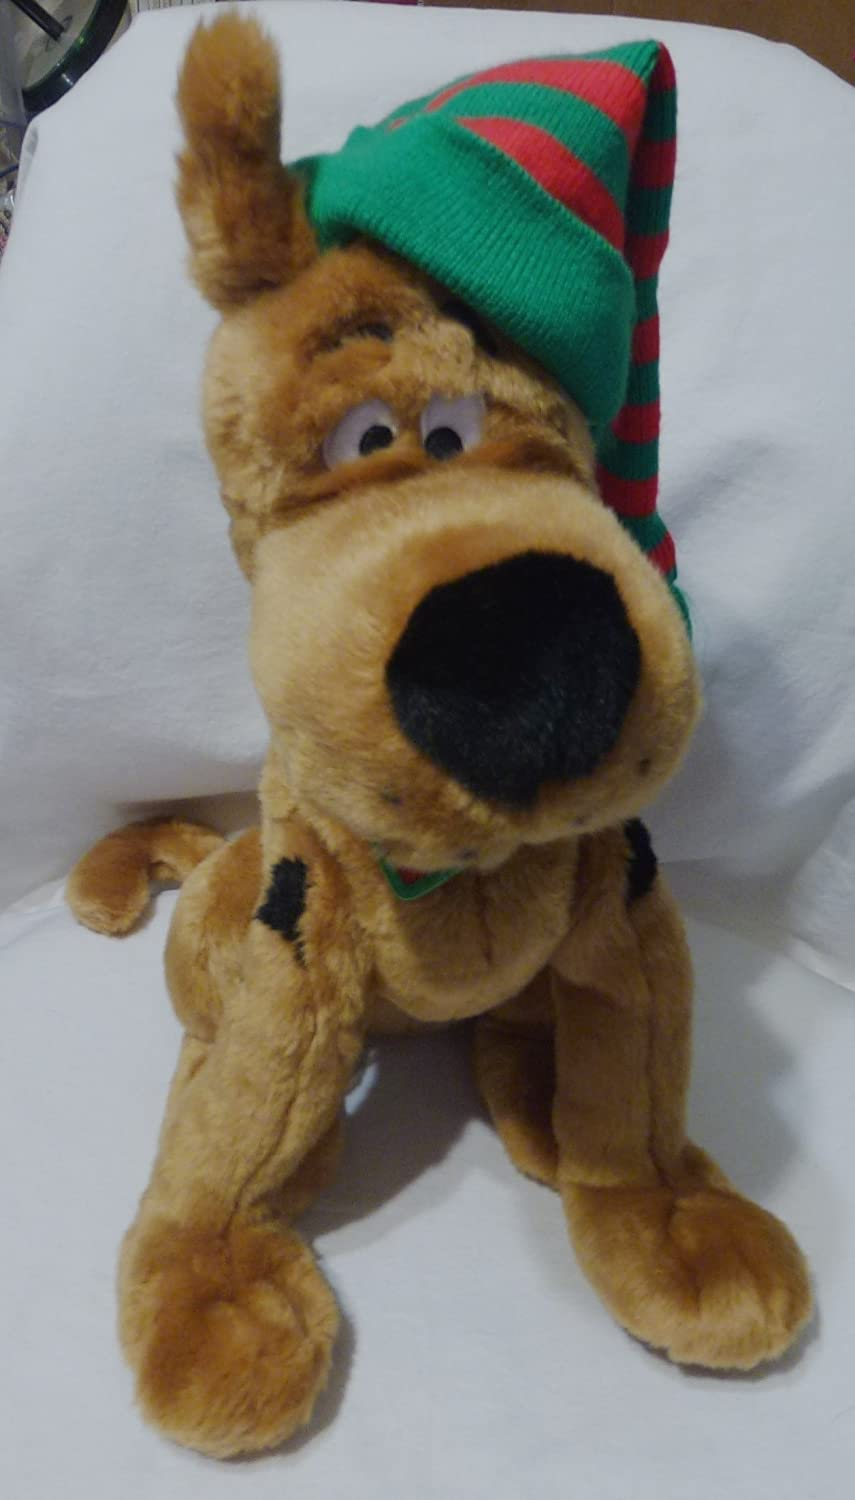 Macy's Exclusive Holiday Scooby-Doo Plush Toy & CD-Rom